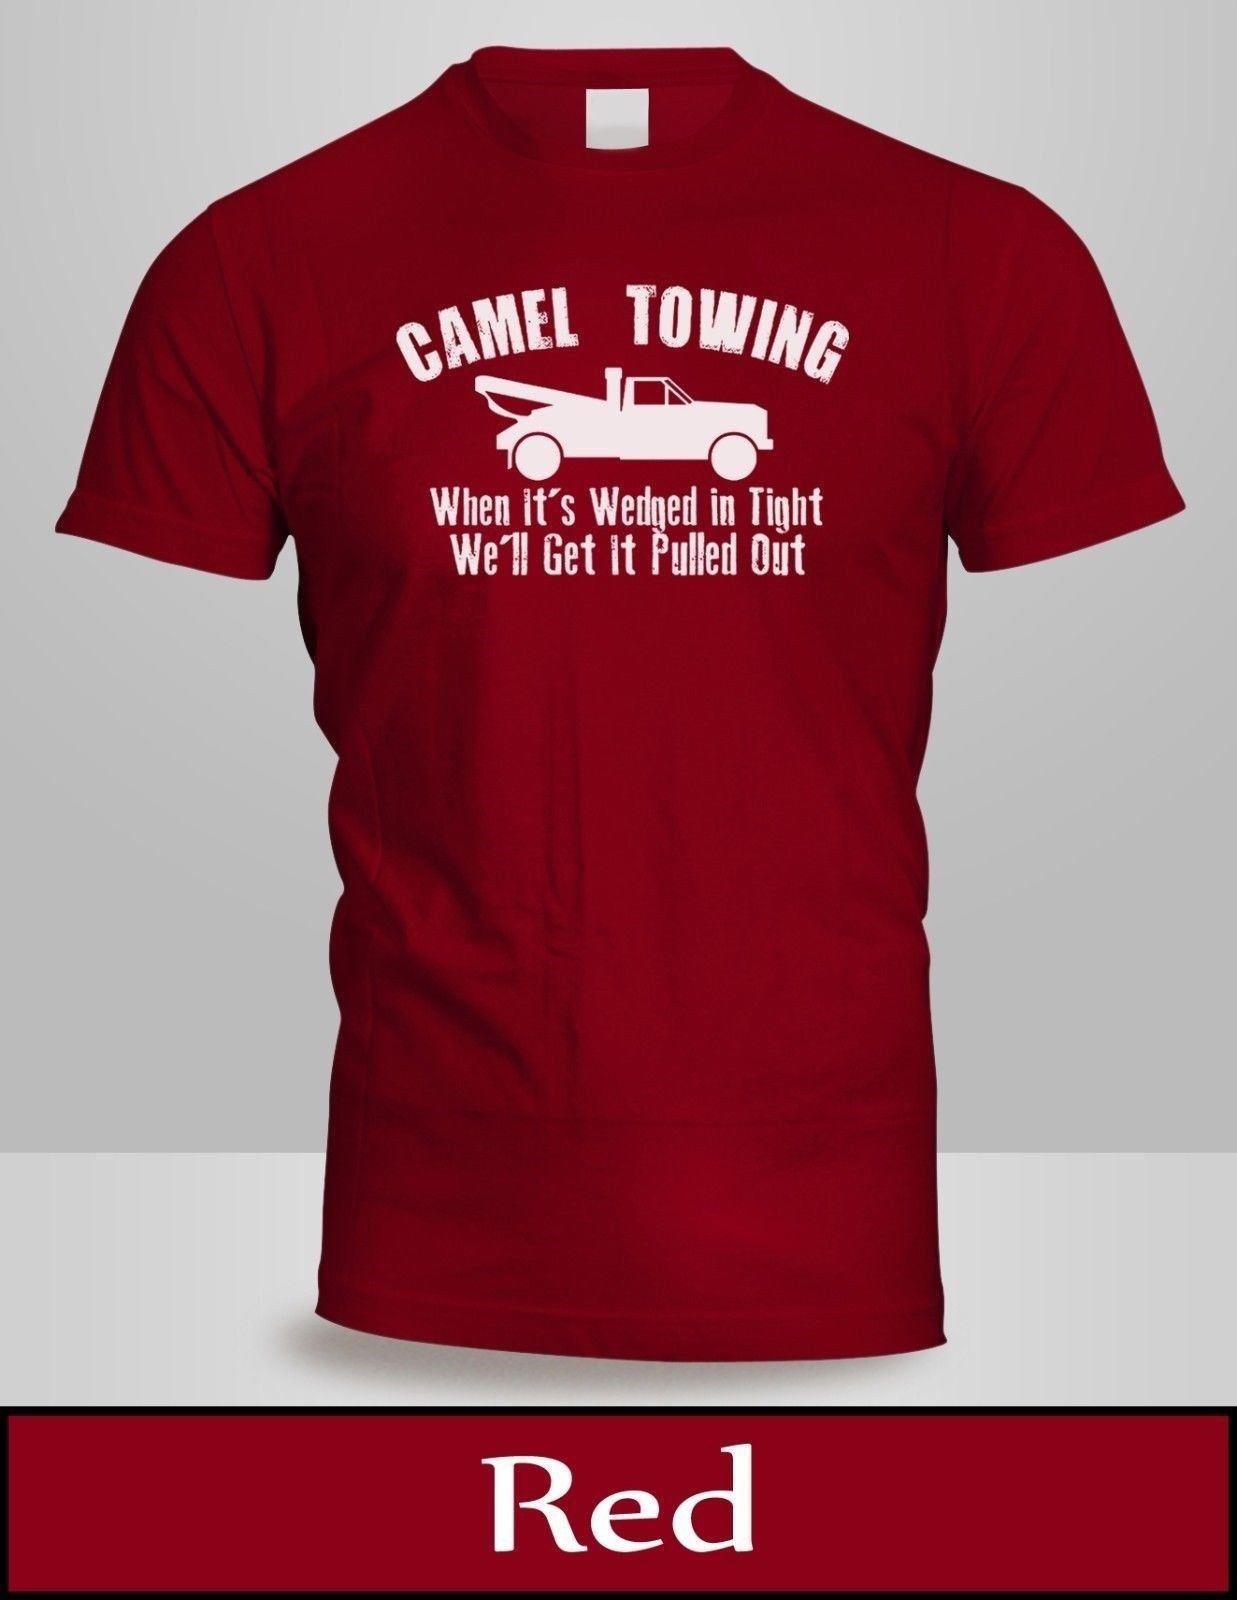 d2100b9db Camel Towing T Shirt Mens Top Red Tow Service Toe College Humor Cool Tee  New 3Funny Unisex Casual Tshirt Top T Shrt Fun T Shirt From Lazyfruit, ...